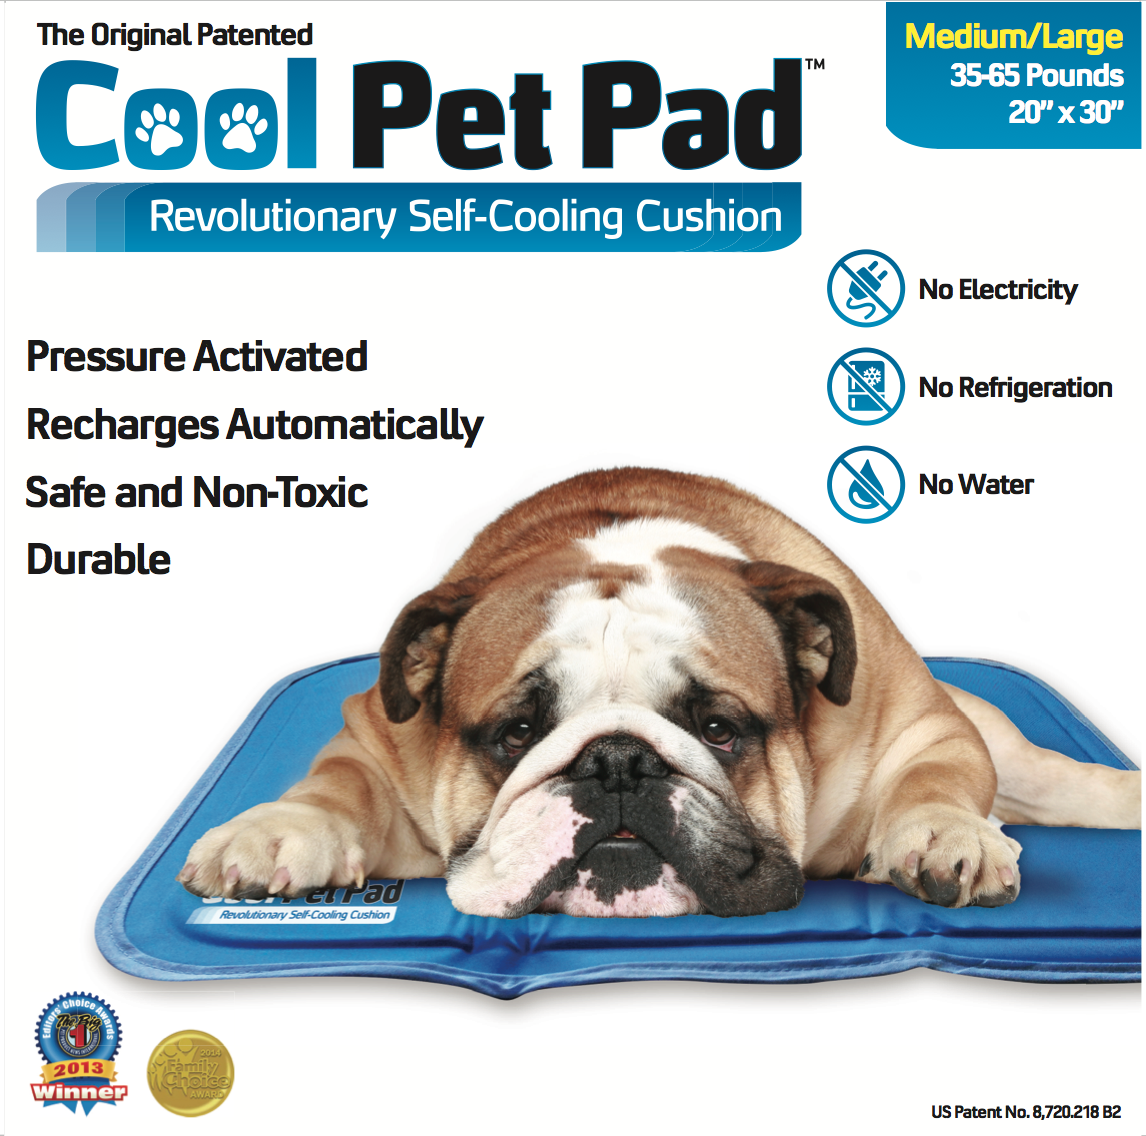 The Original Patented Cool Pet Pad. No Water. No Refrigeration. By RSM Group